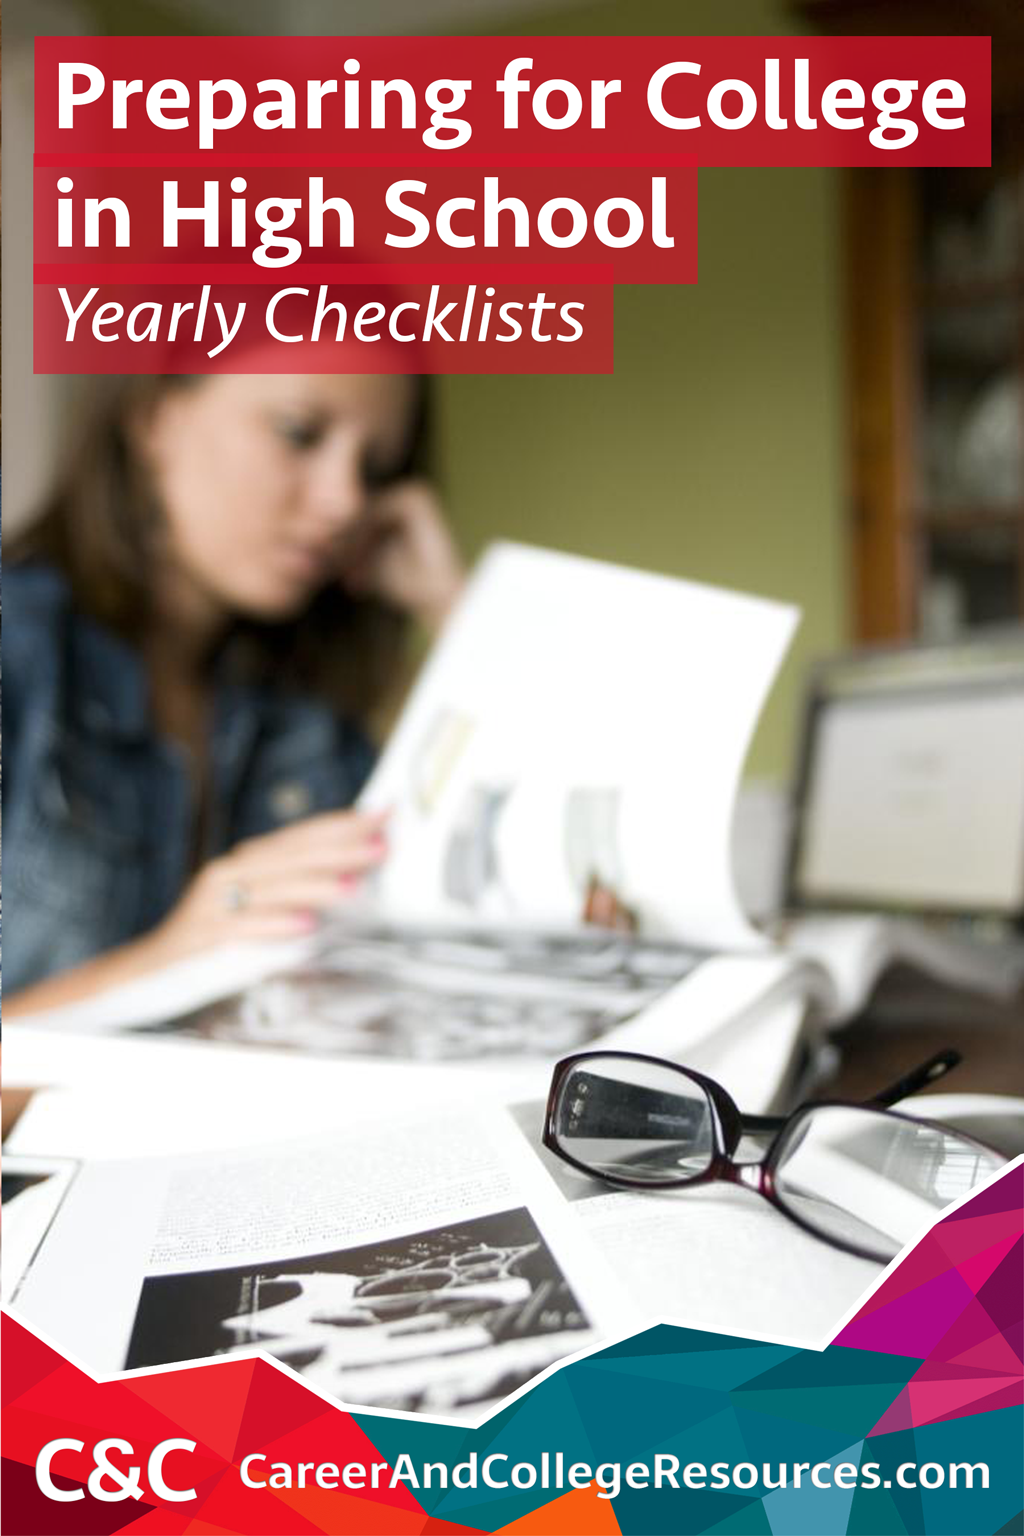 Yearly checklists of what you should do each year of high school to prepare for higher education.